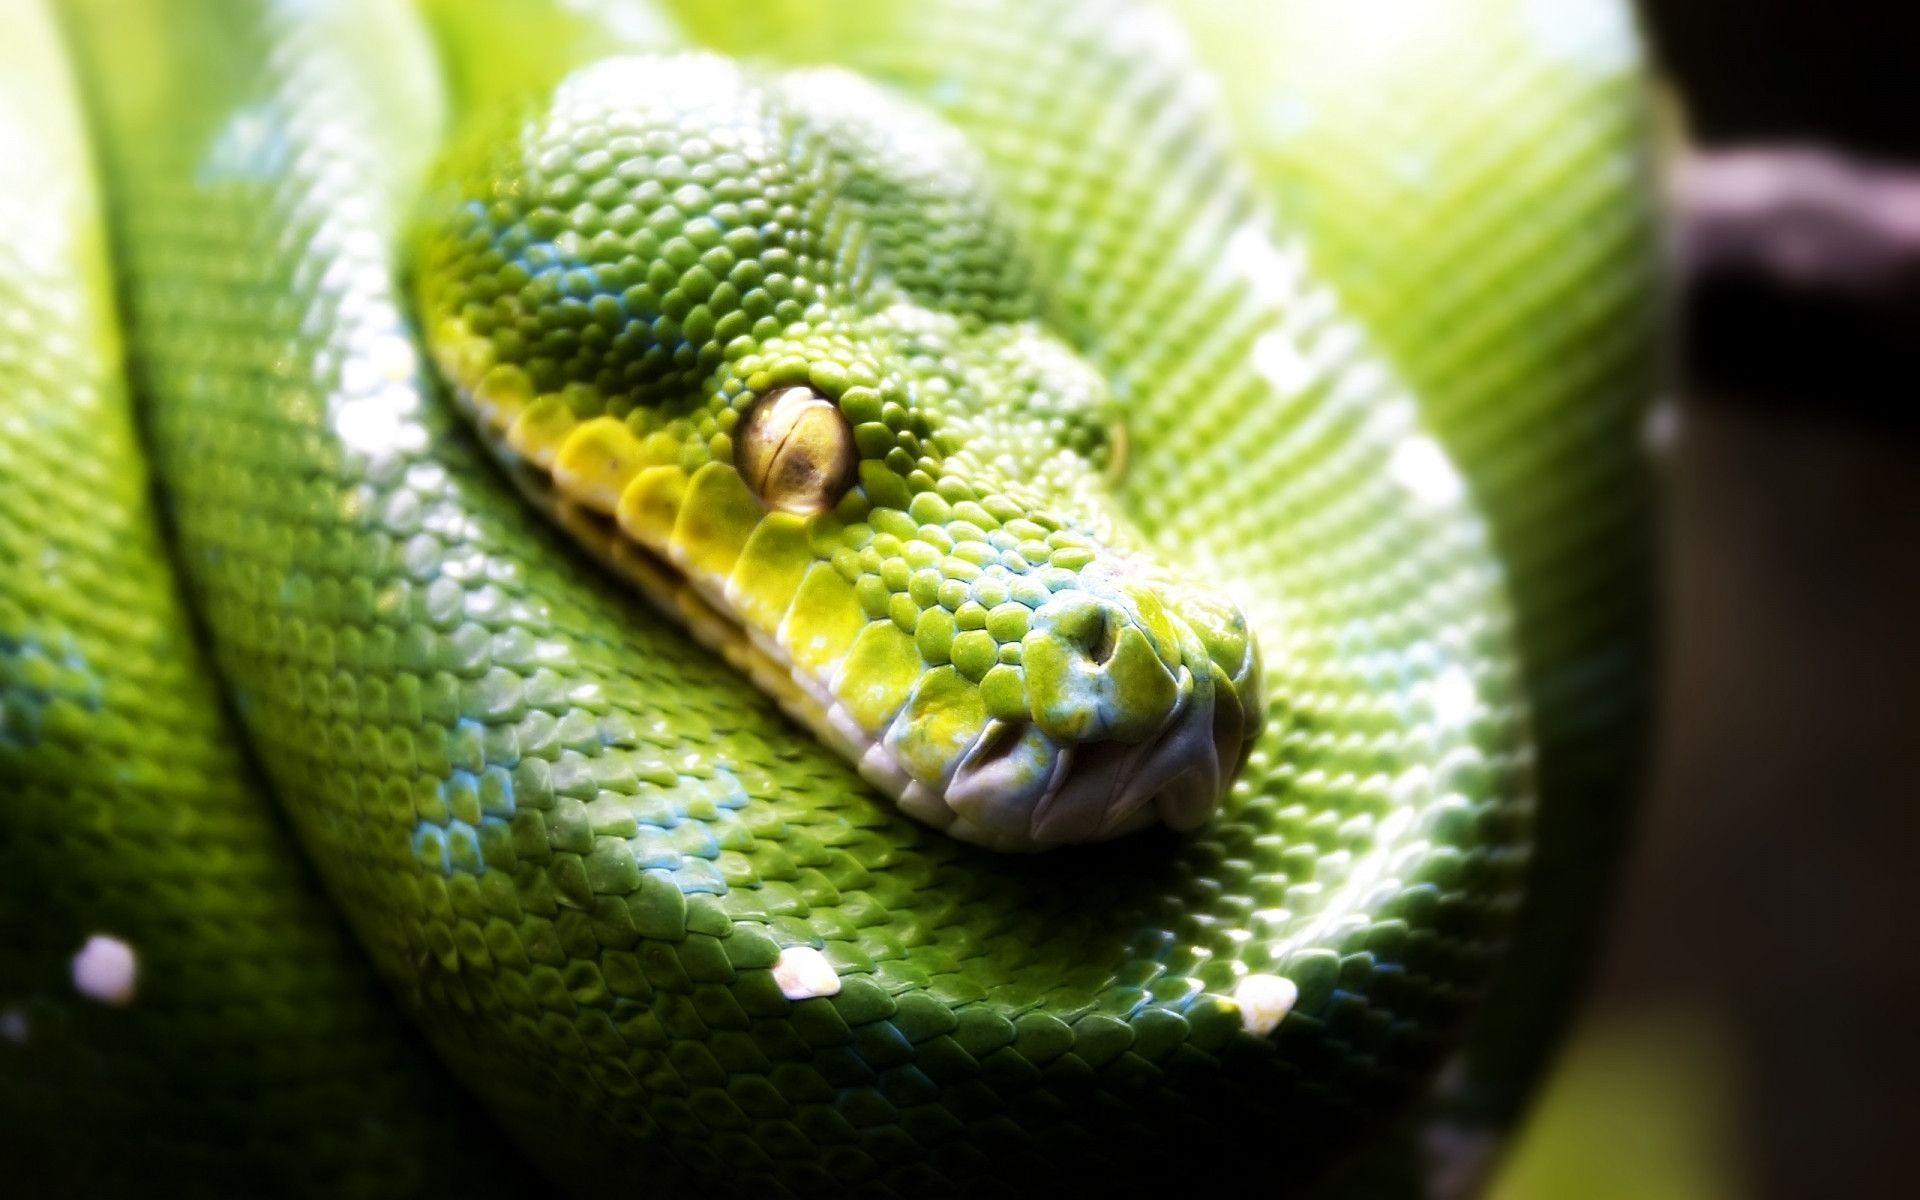 Green snake wallpaper - 1126176